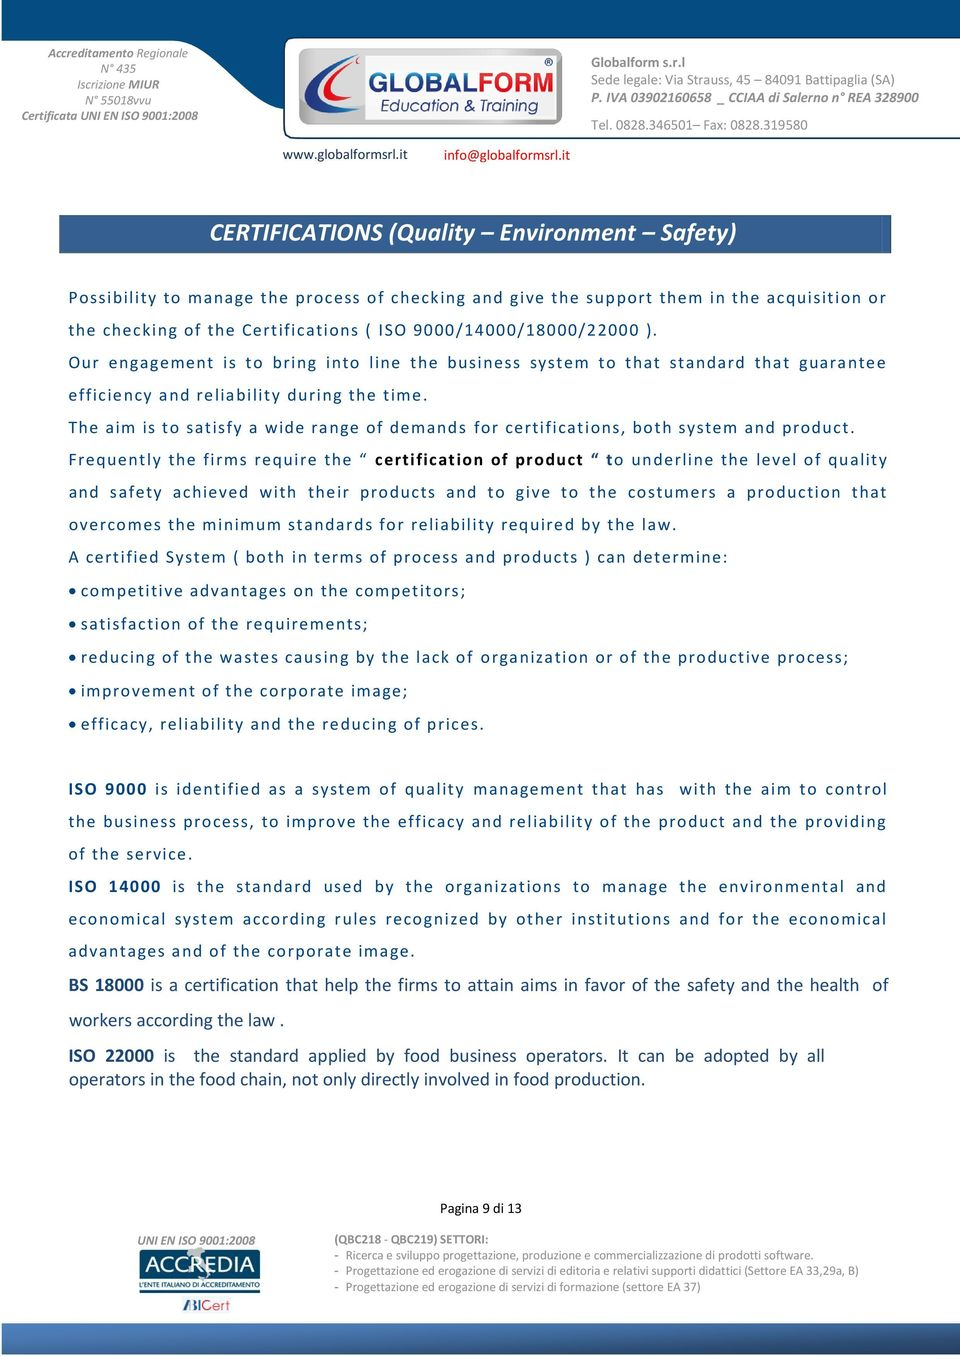 The aim is to satisfy a wide range of demands for certifications, both system and product.